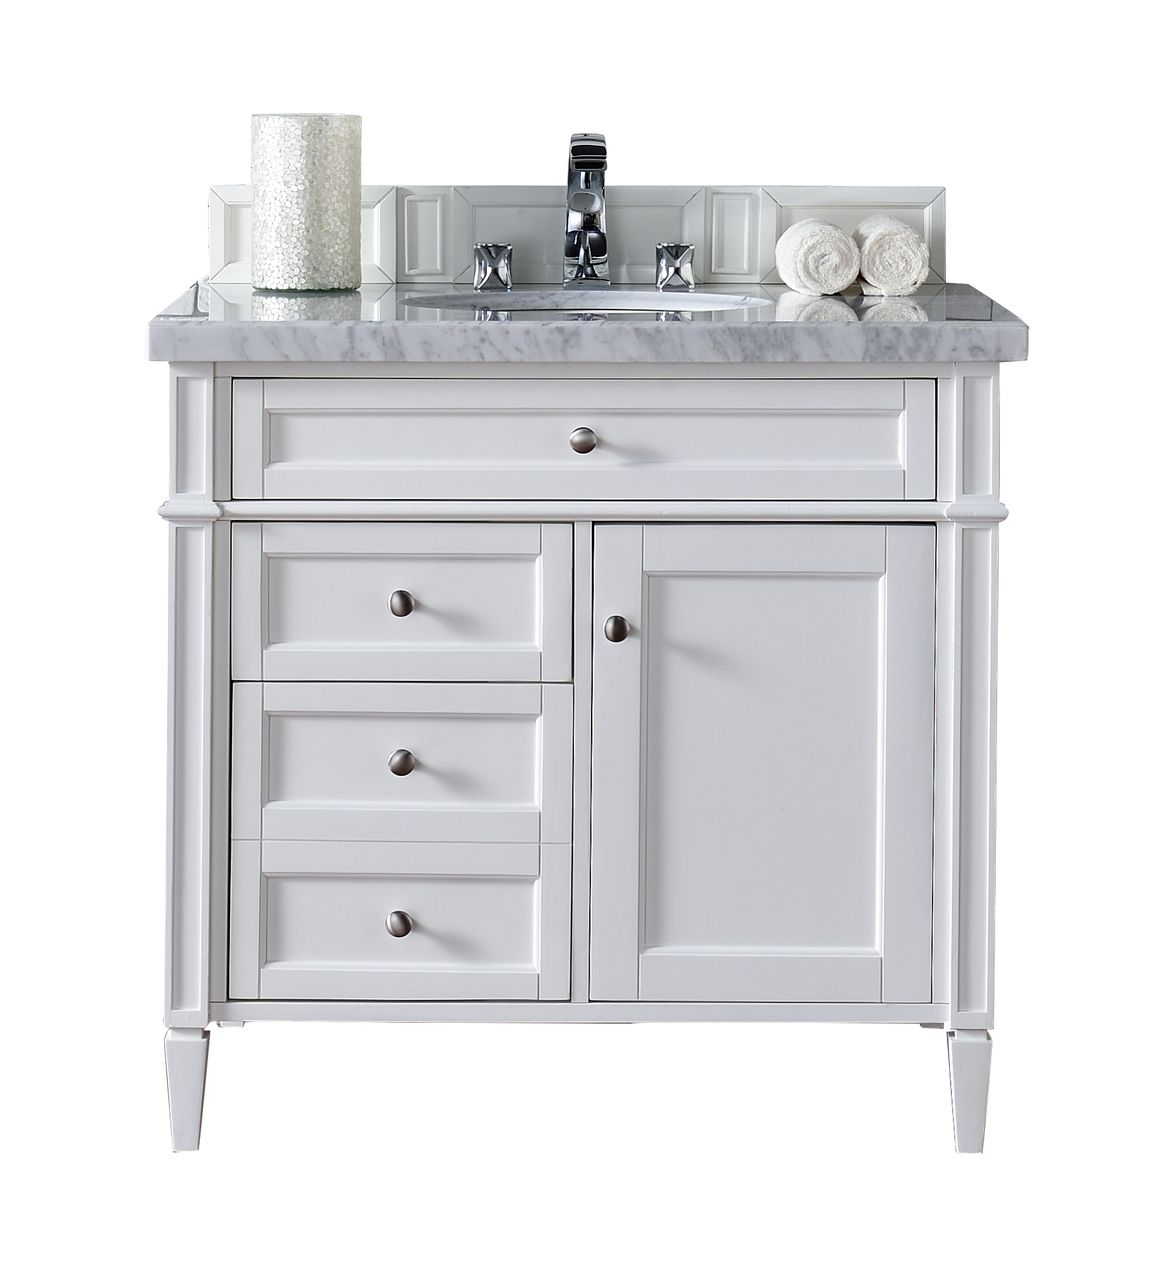 Brittany Single Bathroom Vanity White White Bathrooms White - Bathroom vanities 36 inches wide for bathroom decor ideas